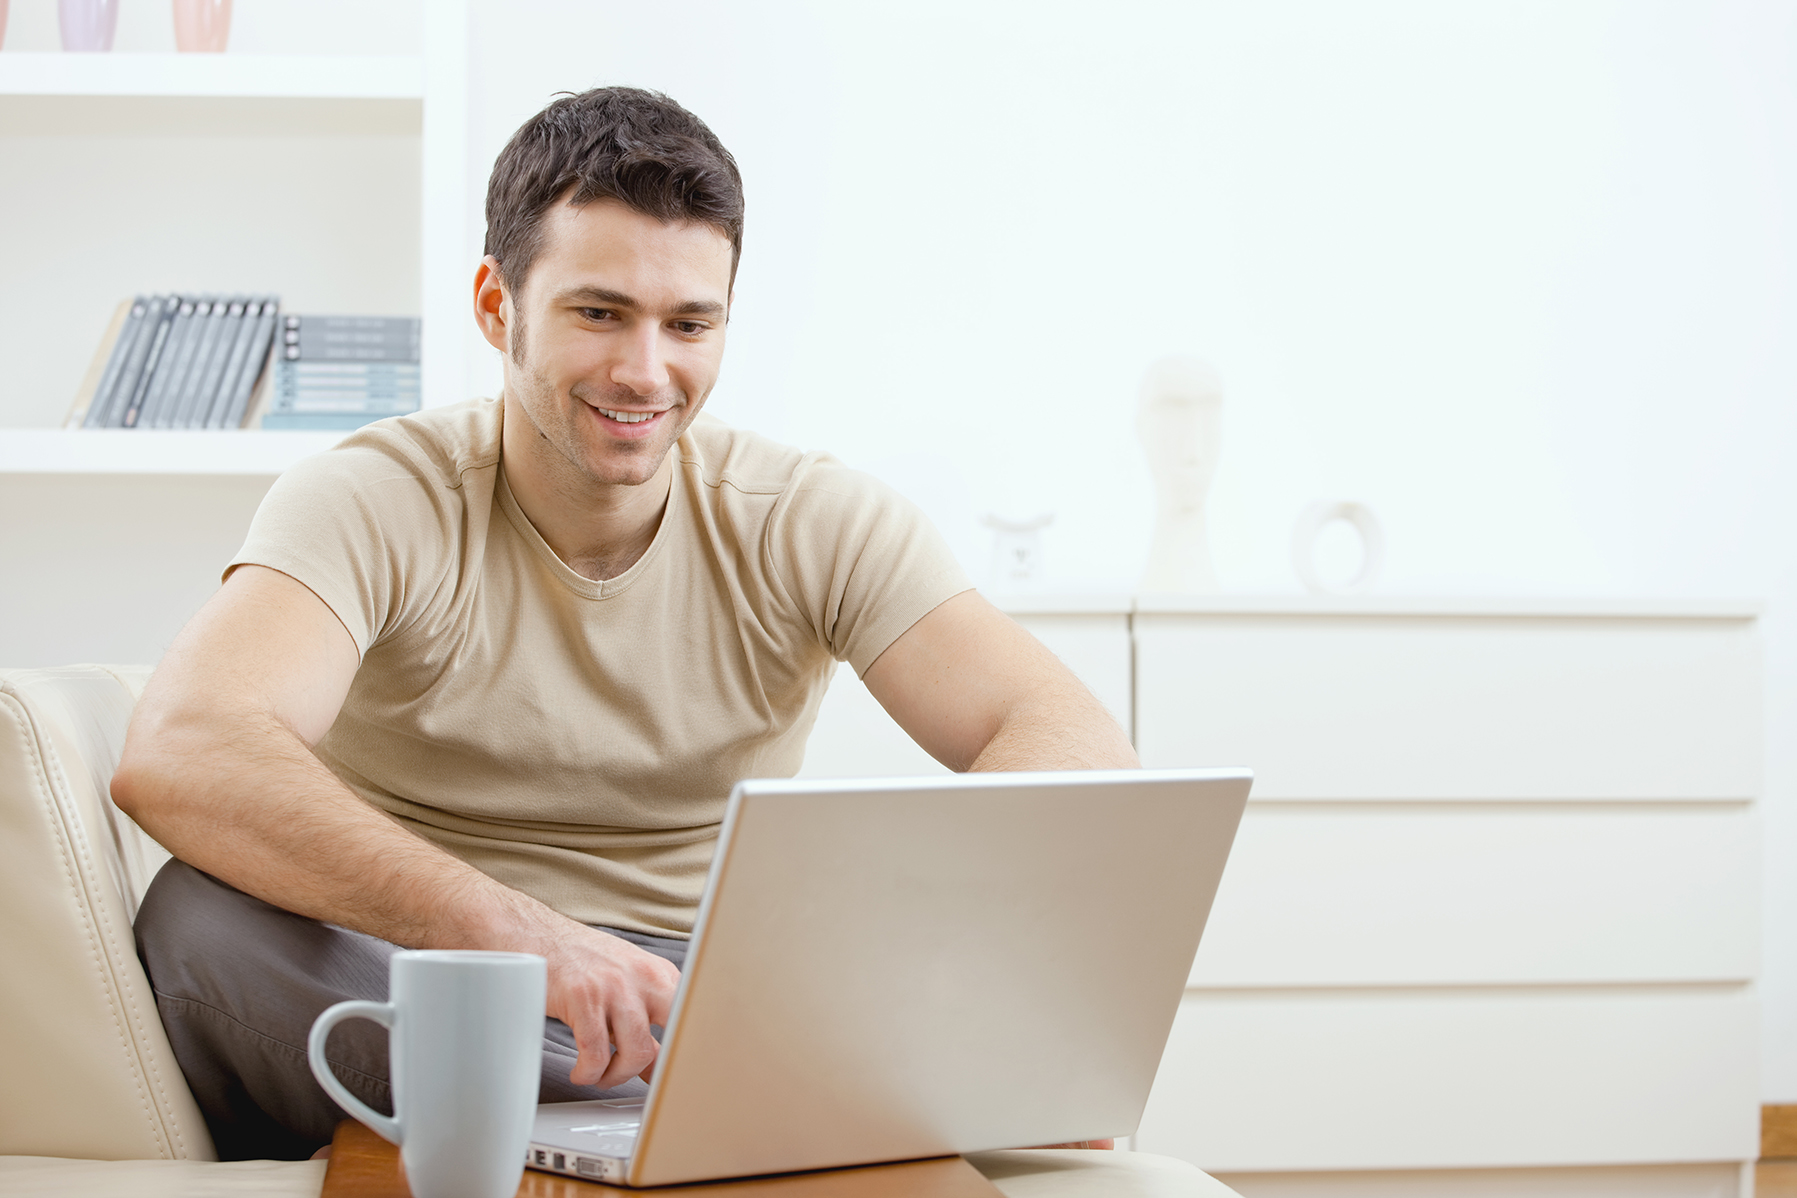 Male looking at a laptop